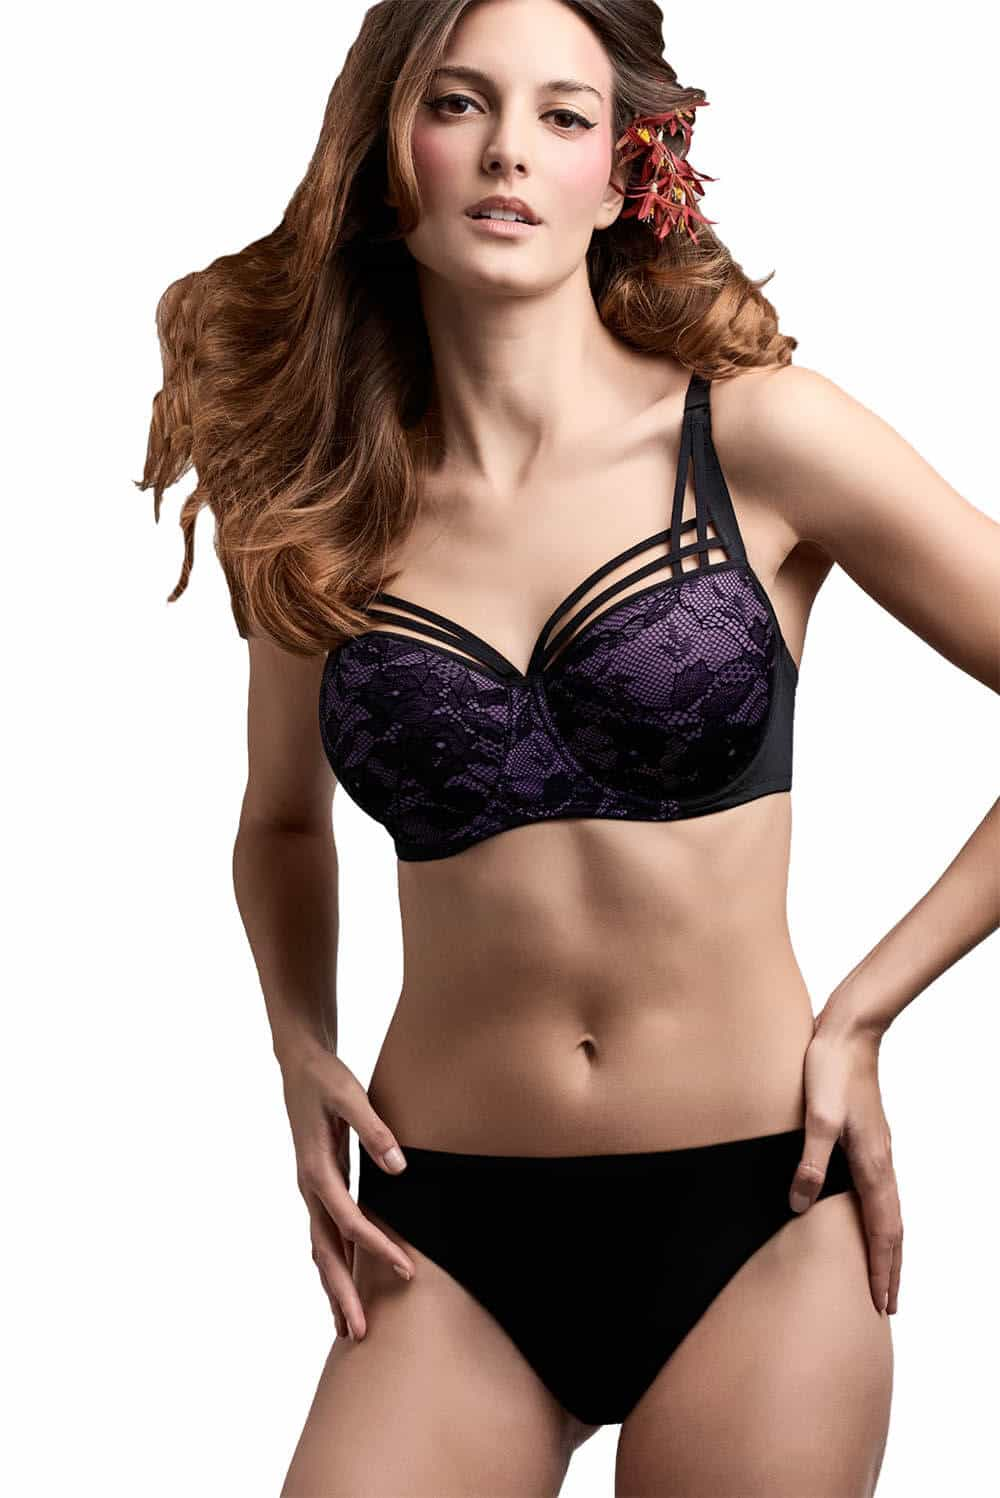 marlies-dekkers-hidden-purple-balcony-bh-vm